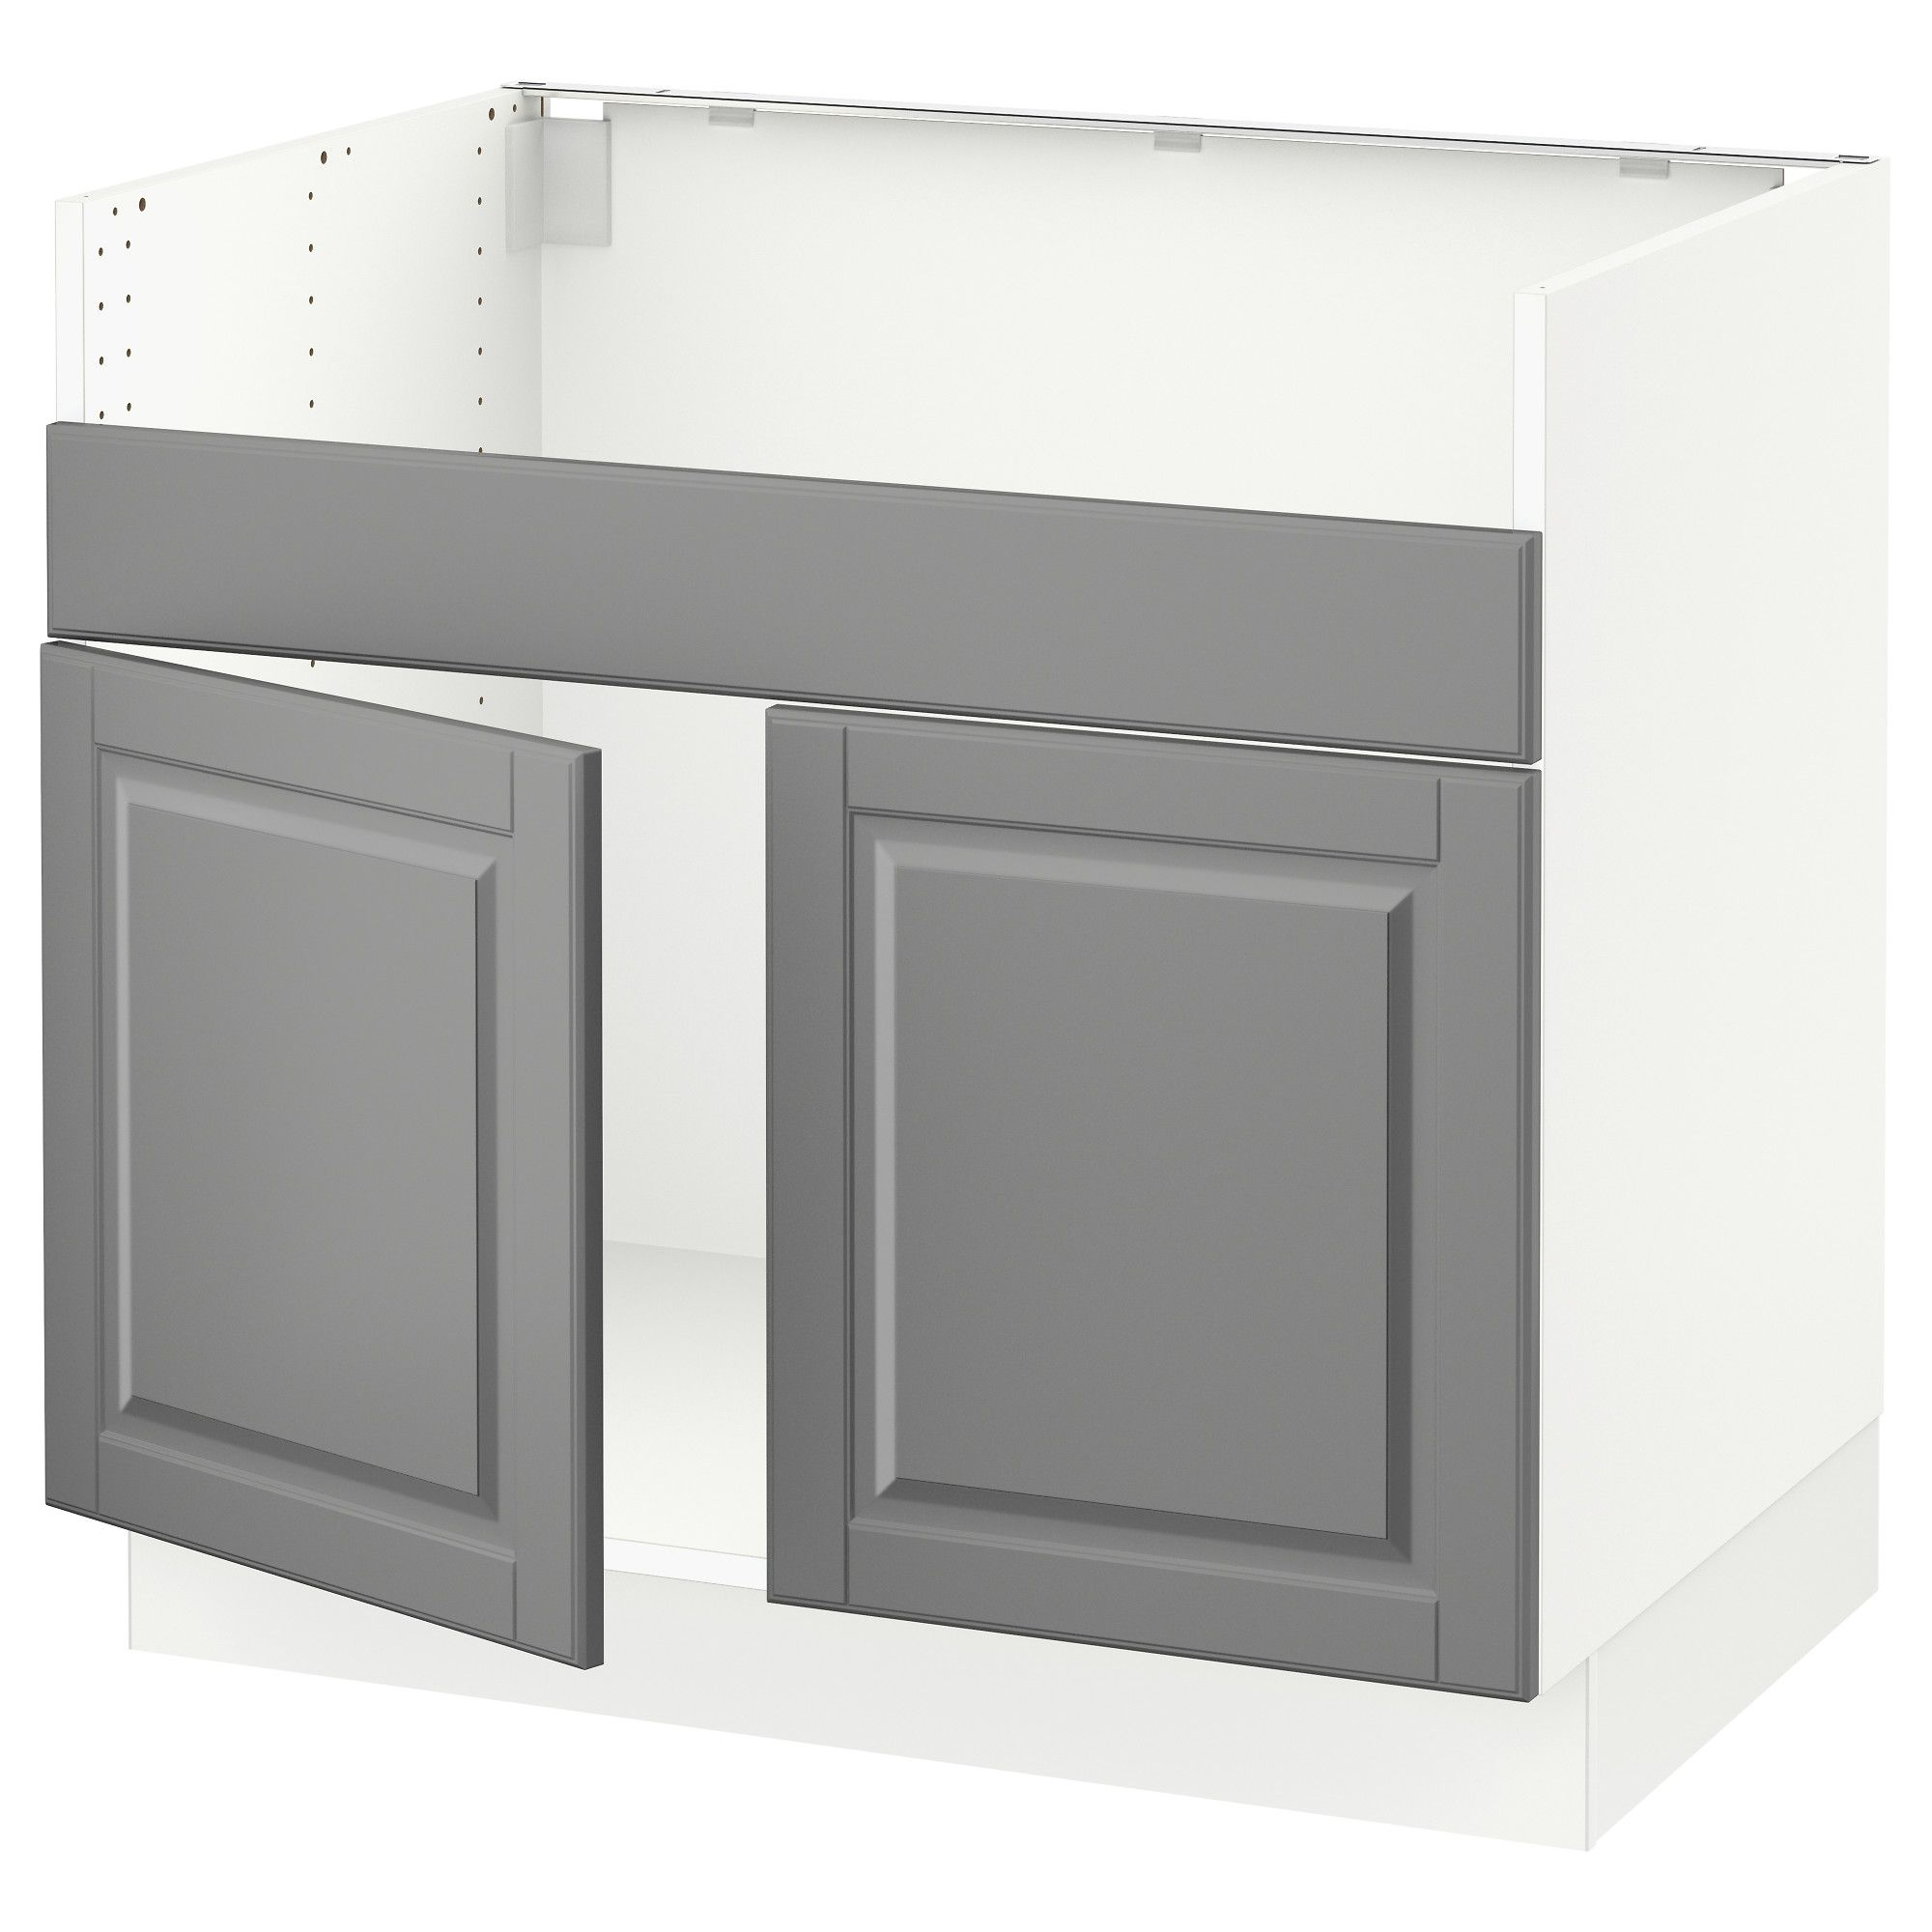 Ikea sektion base cabinet f domsjö 2 bowl sink white bodbyn